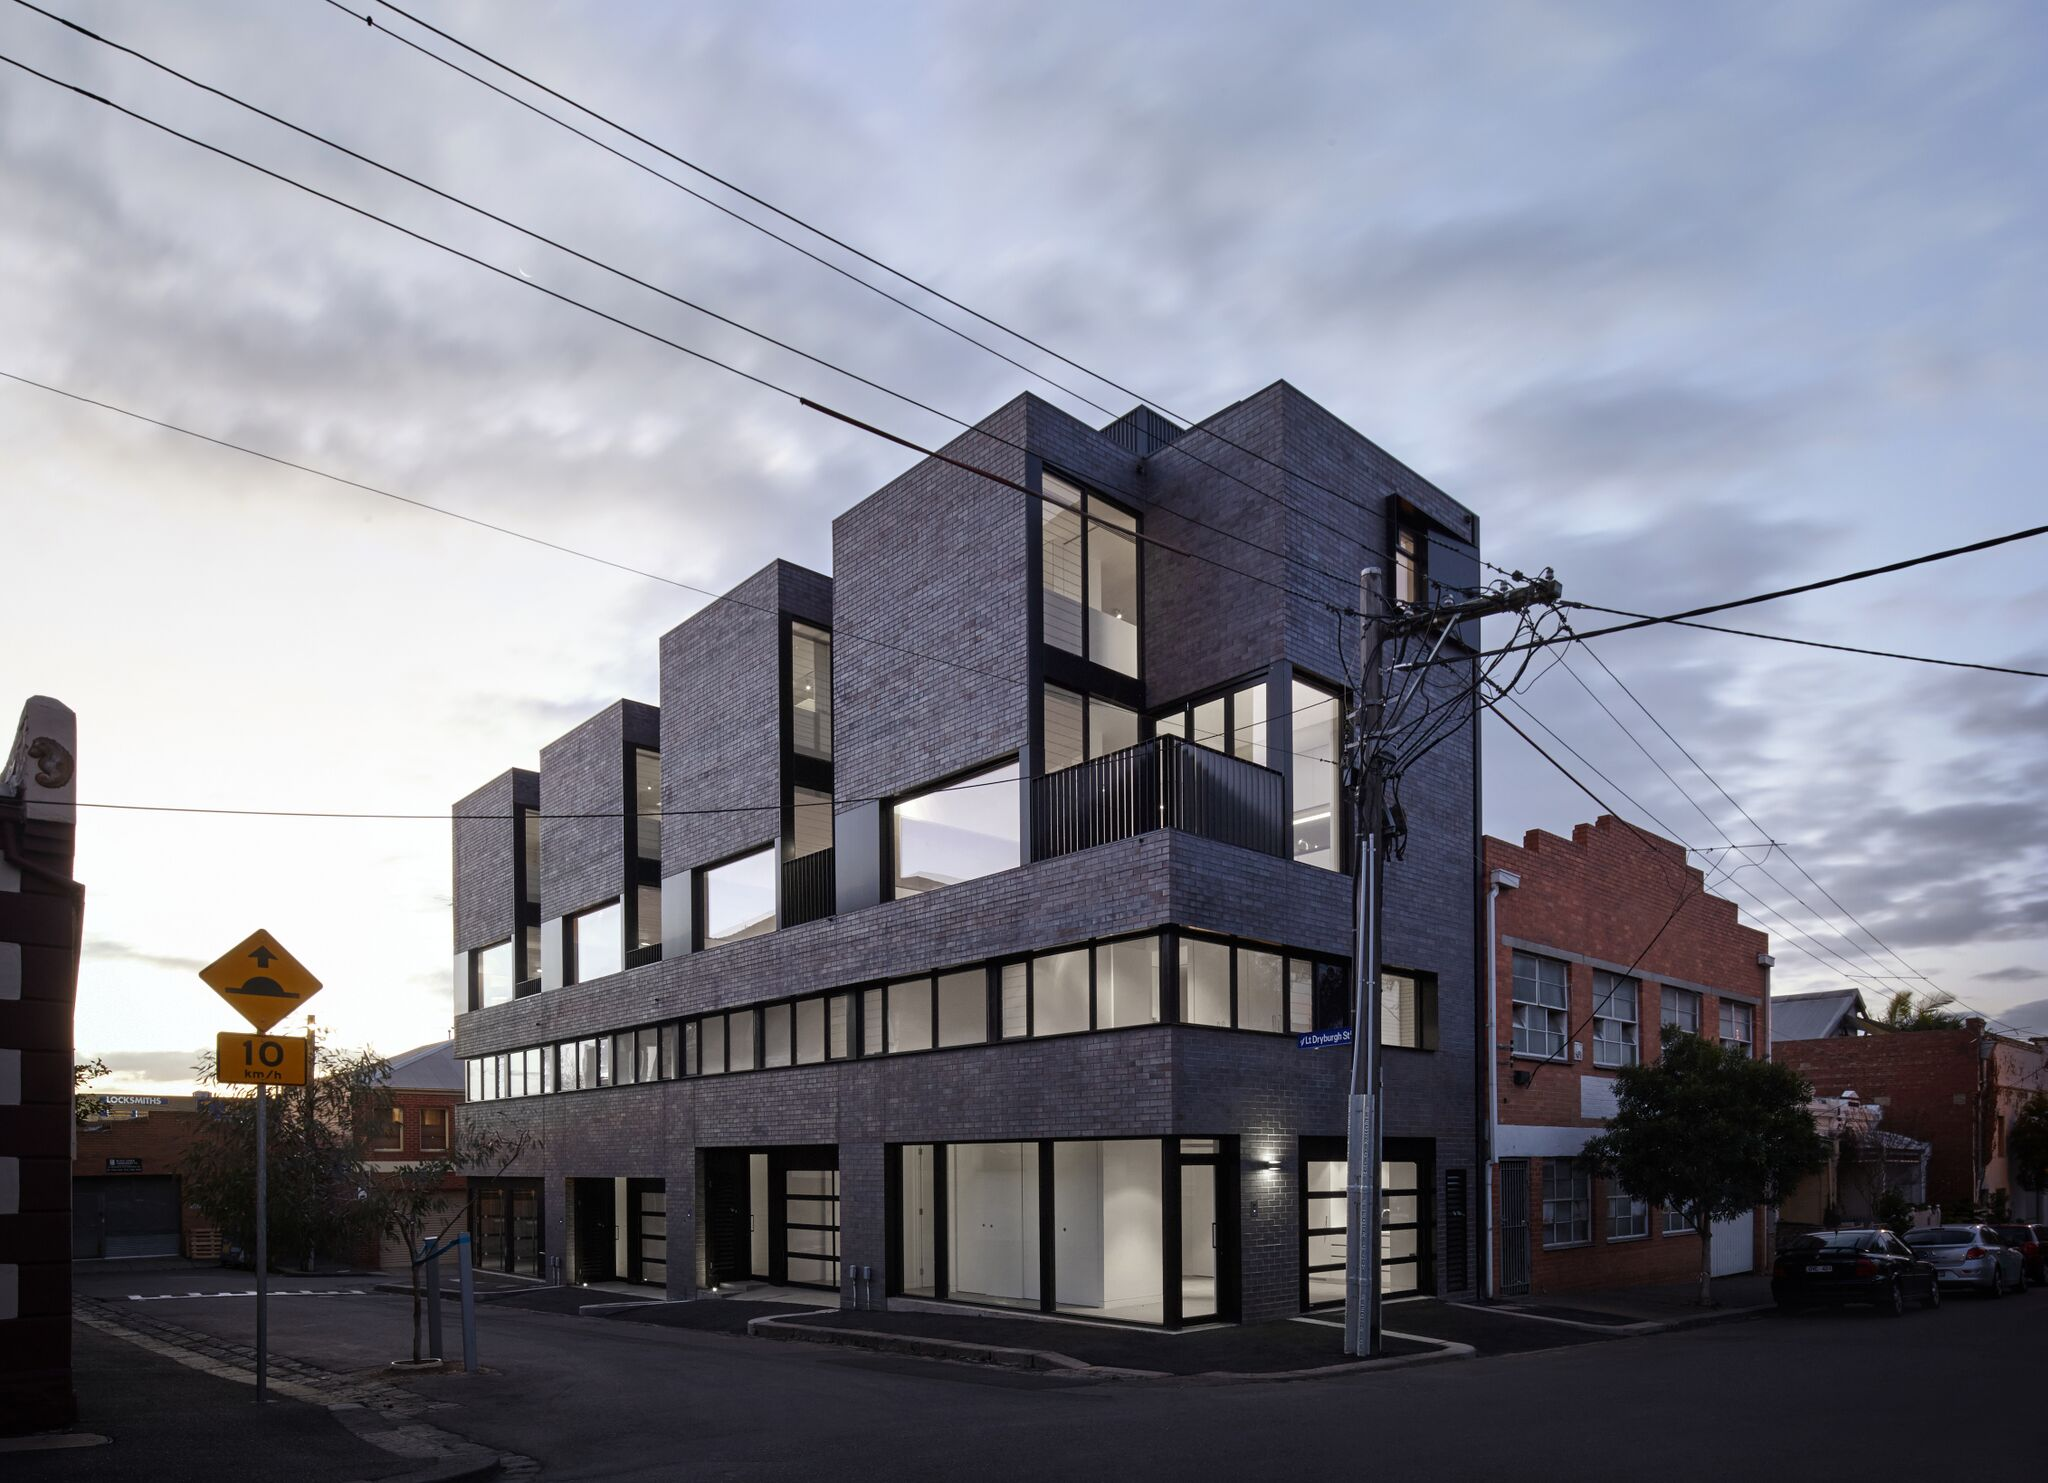 Lothian St Houses - Freadman White - Architecture Archive - The Local Project